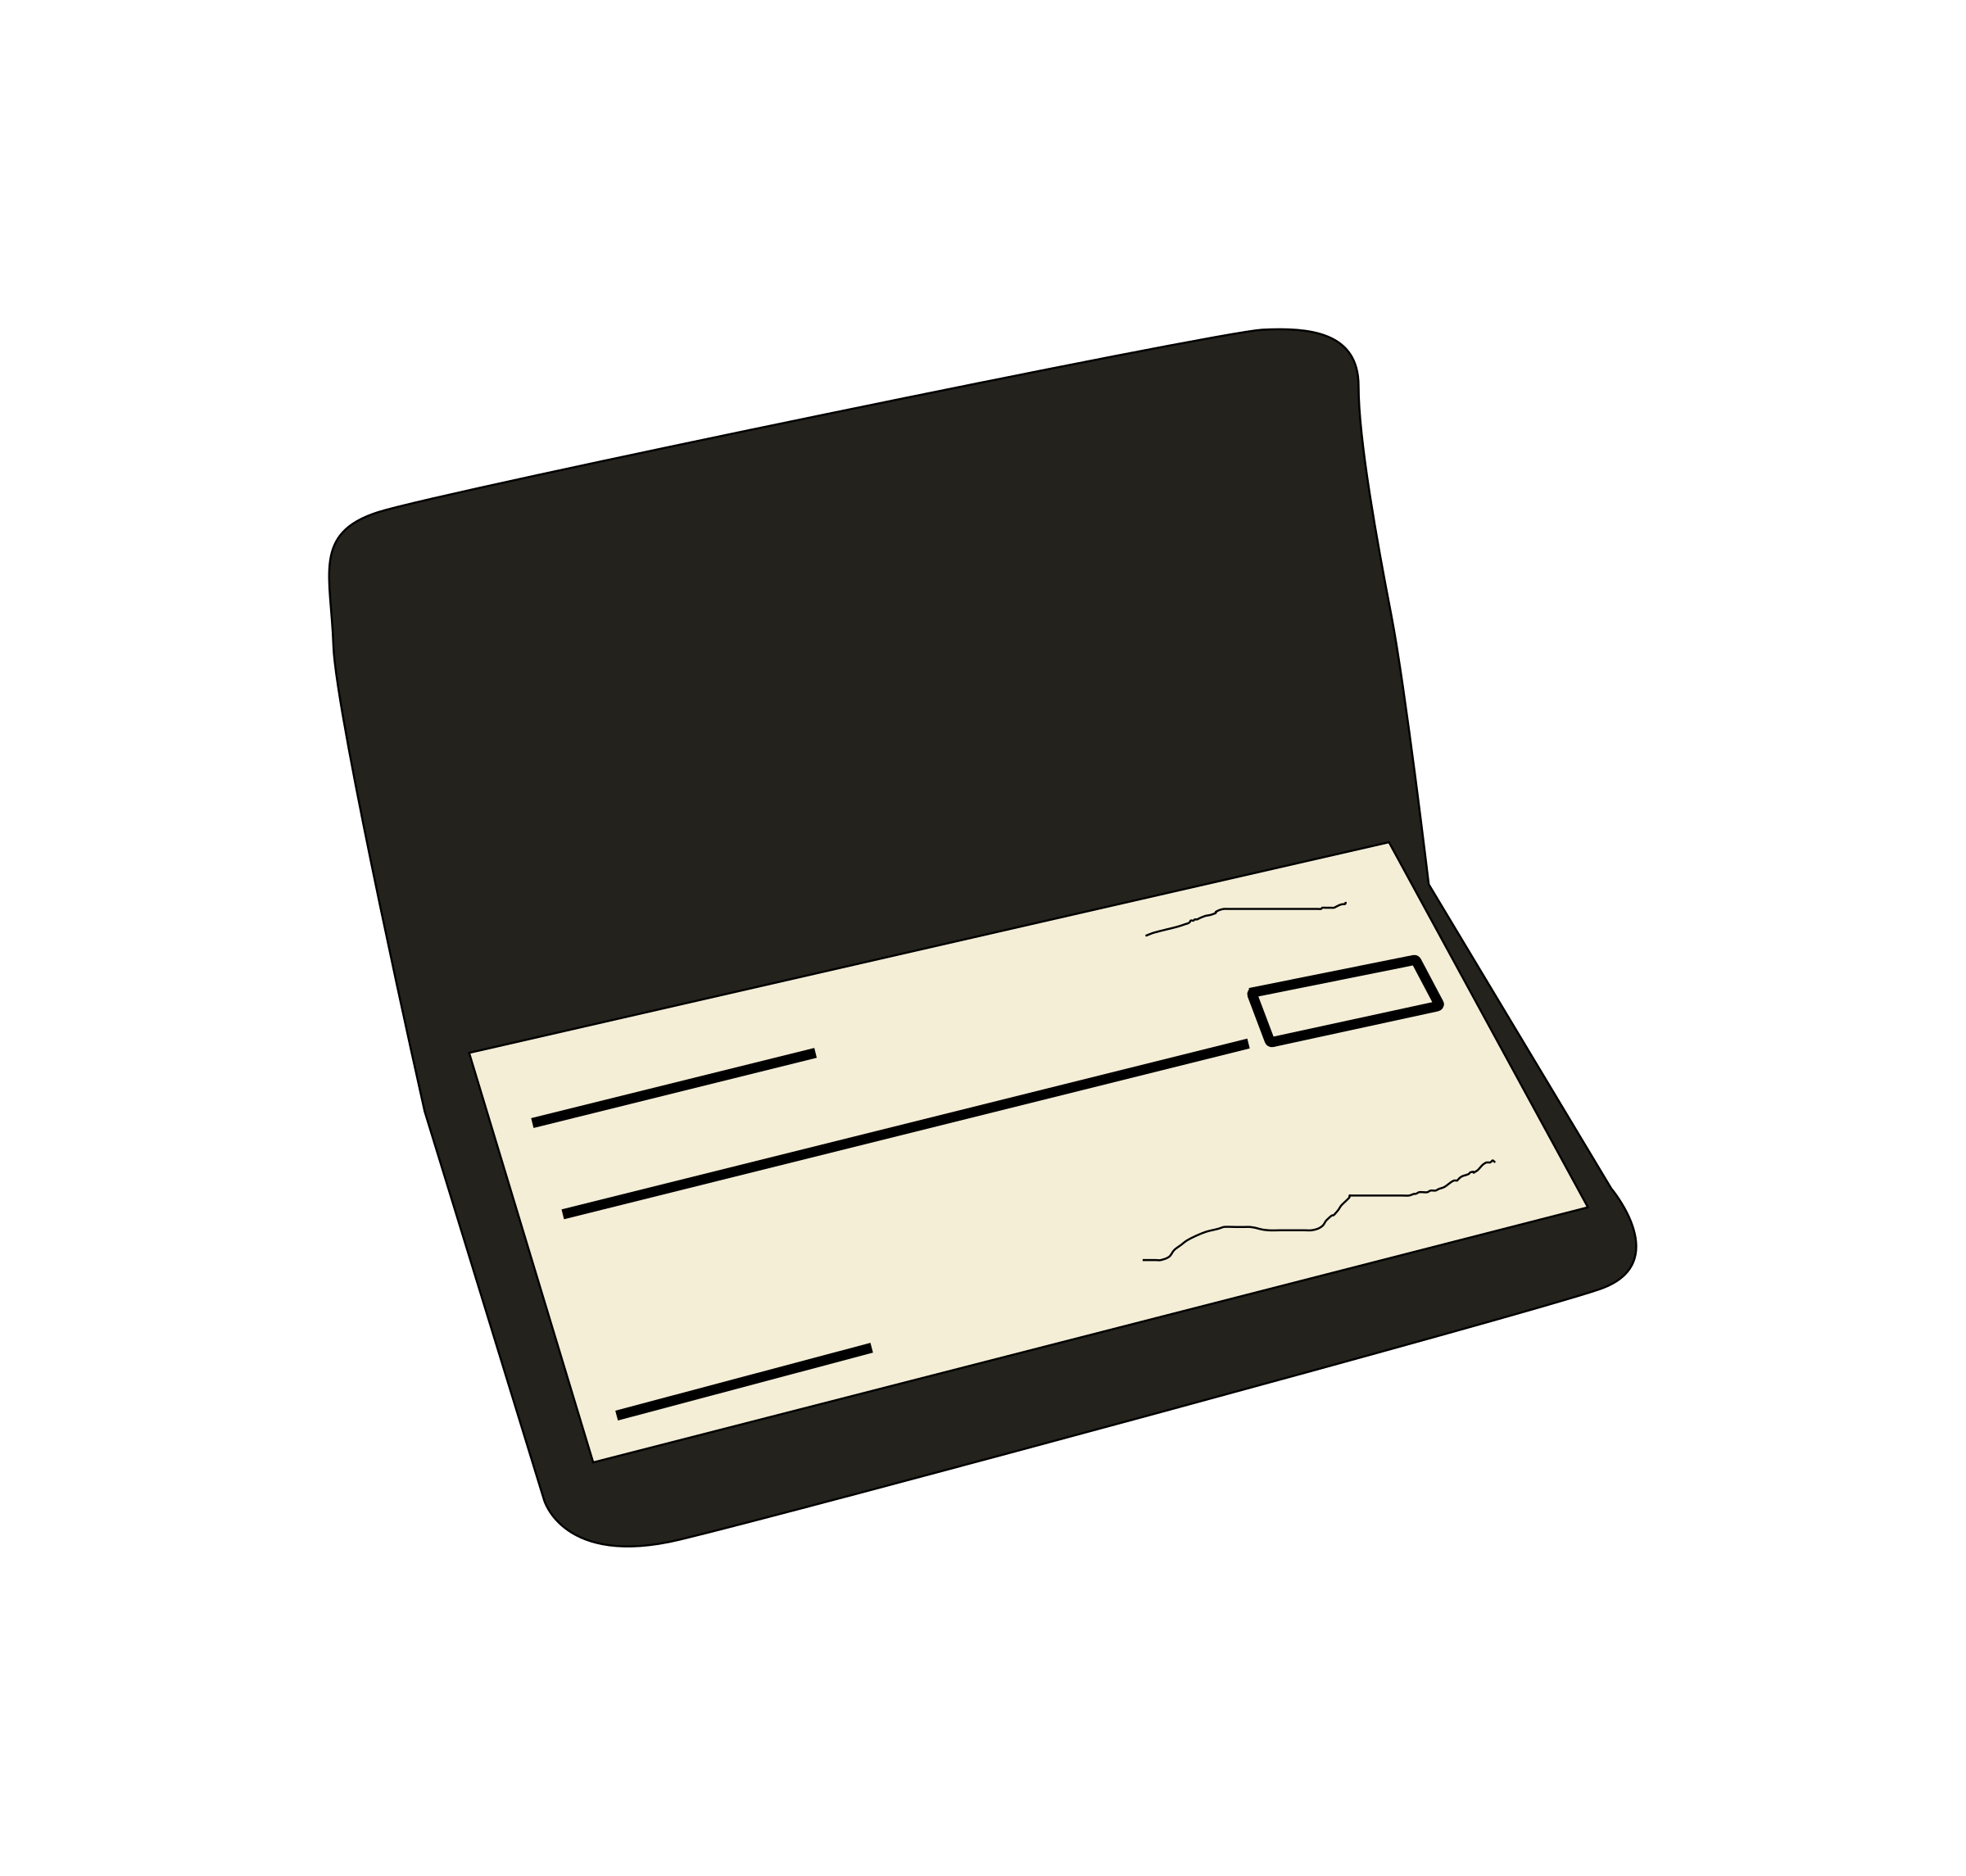 Check book clipart jpg free library Clipart - Checkbook jpg free library